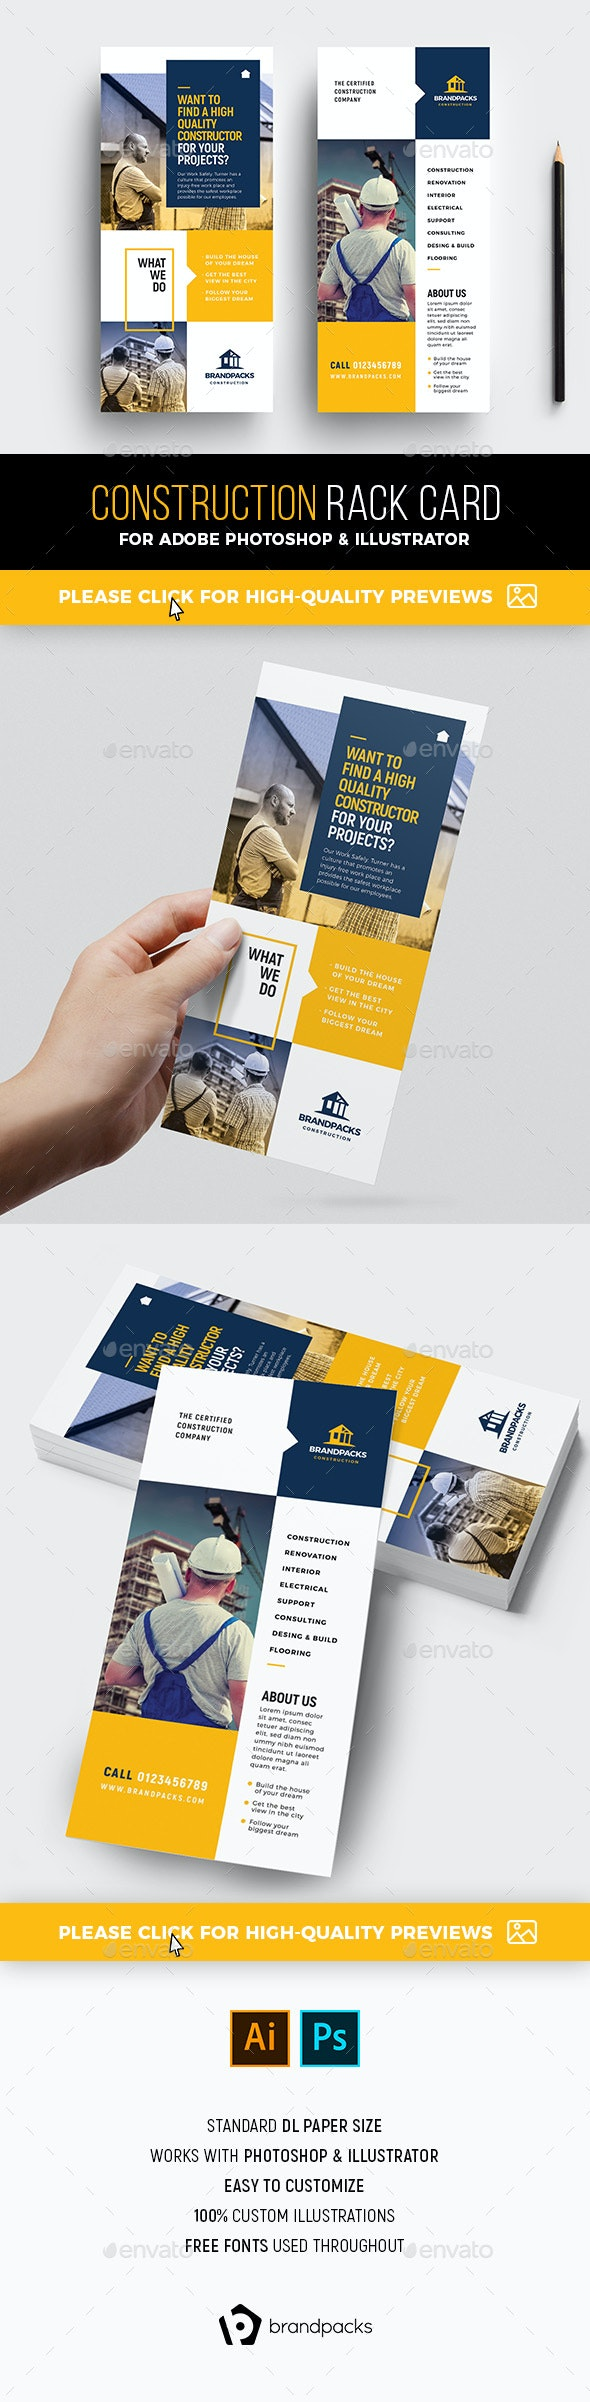 DL Construction Rack Card Template - Corporate Flyers